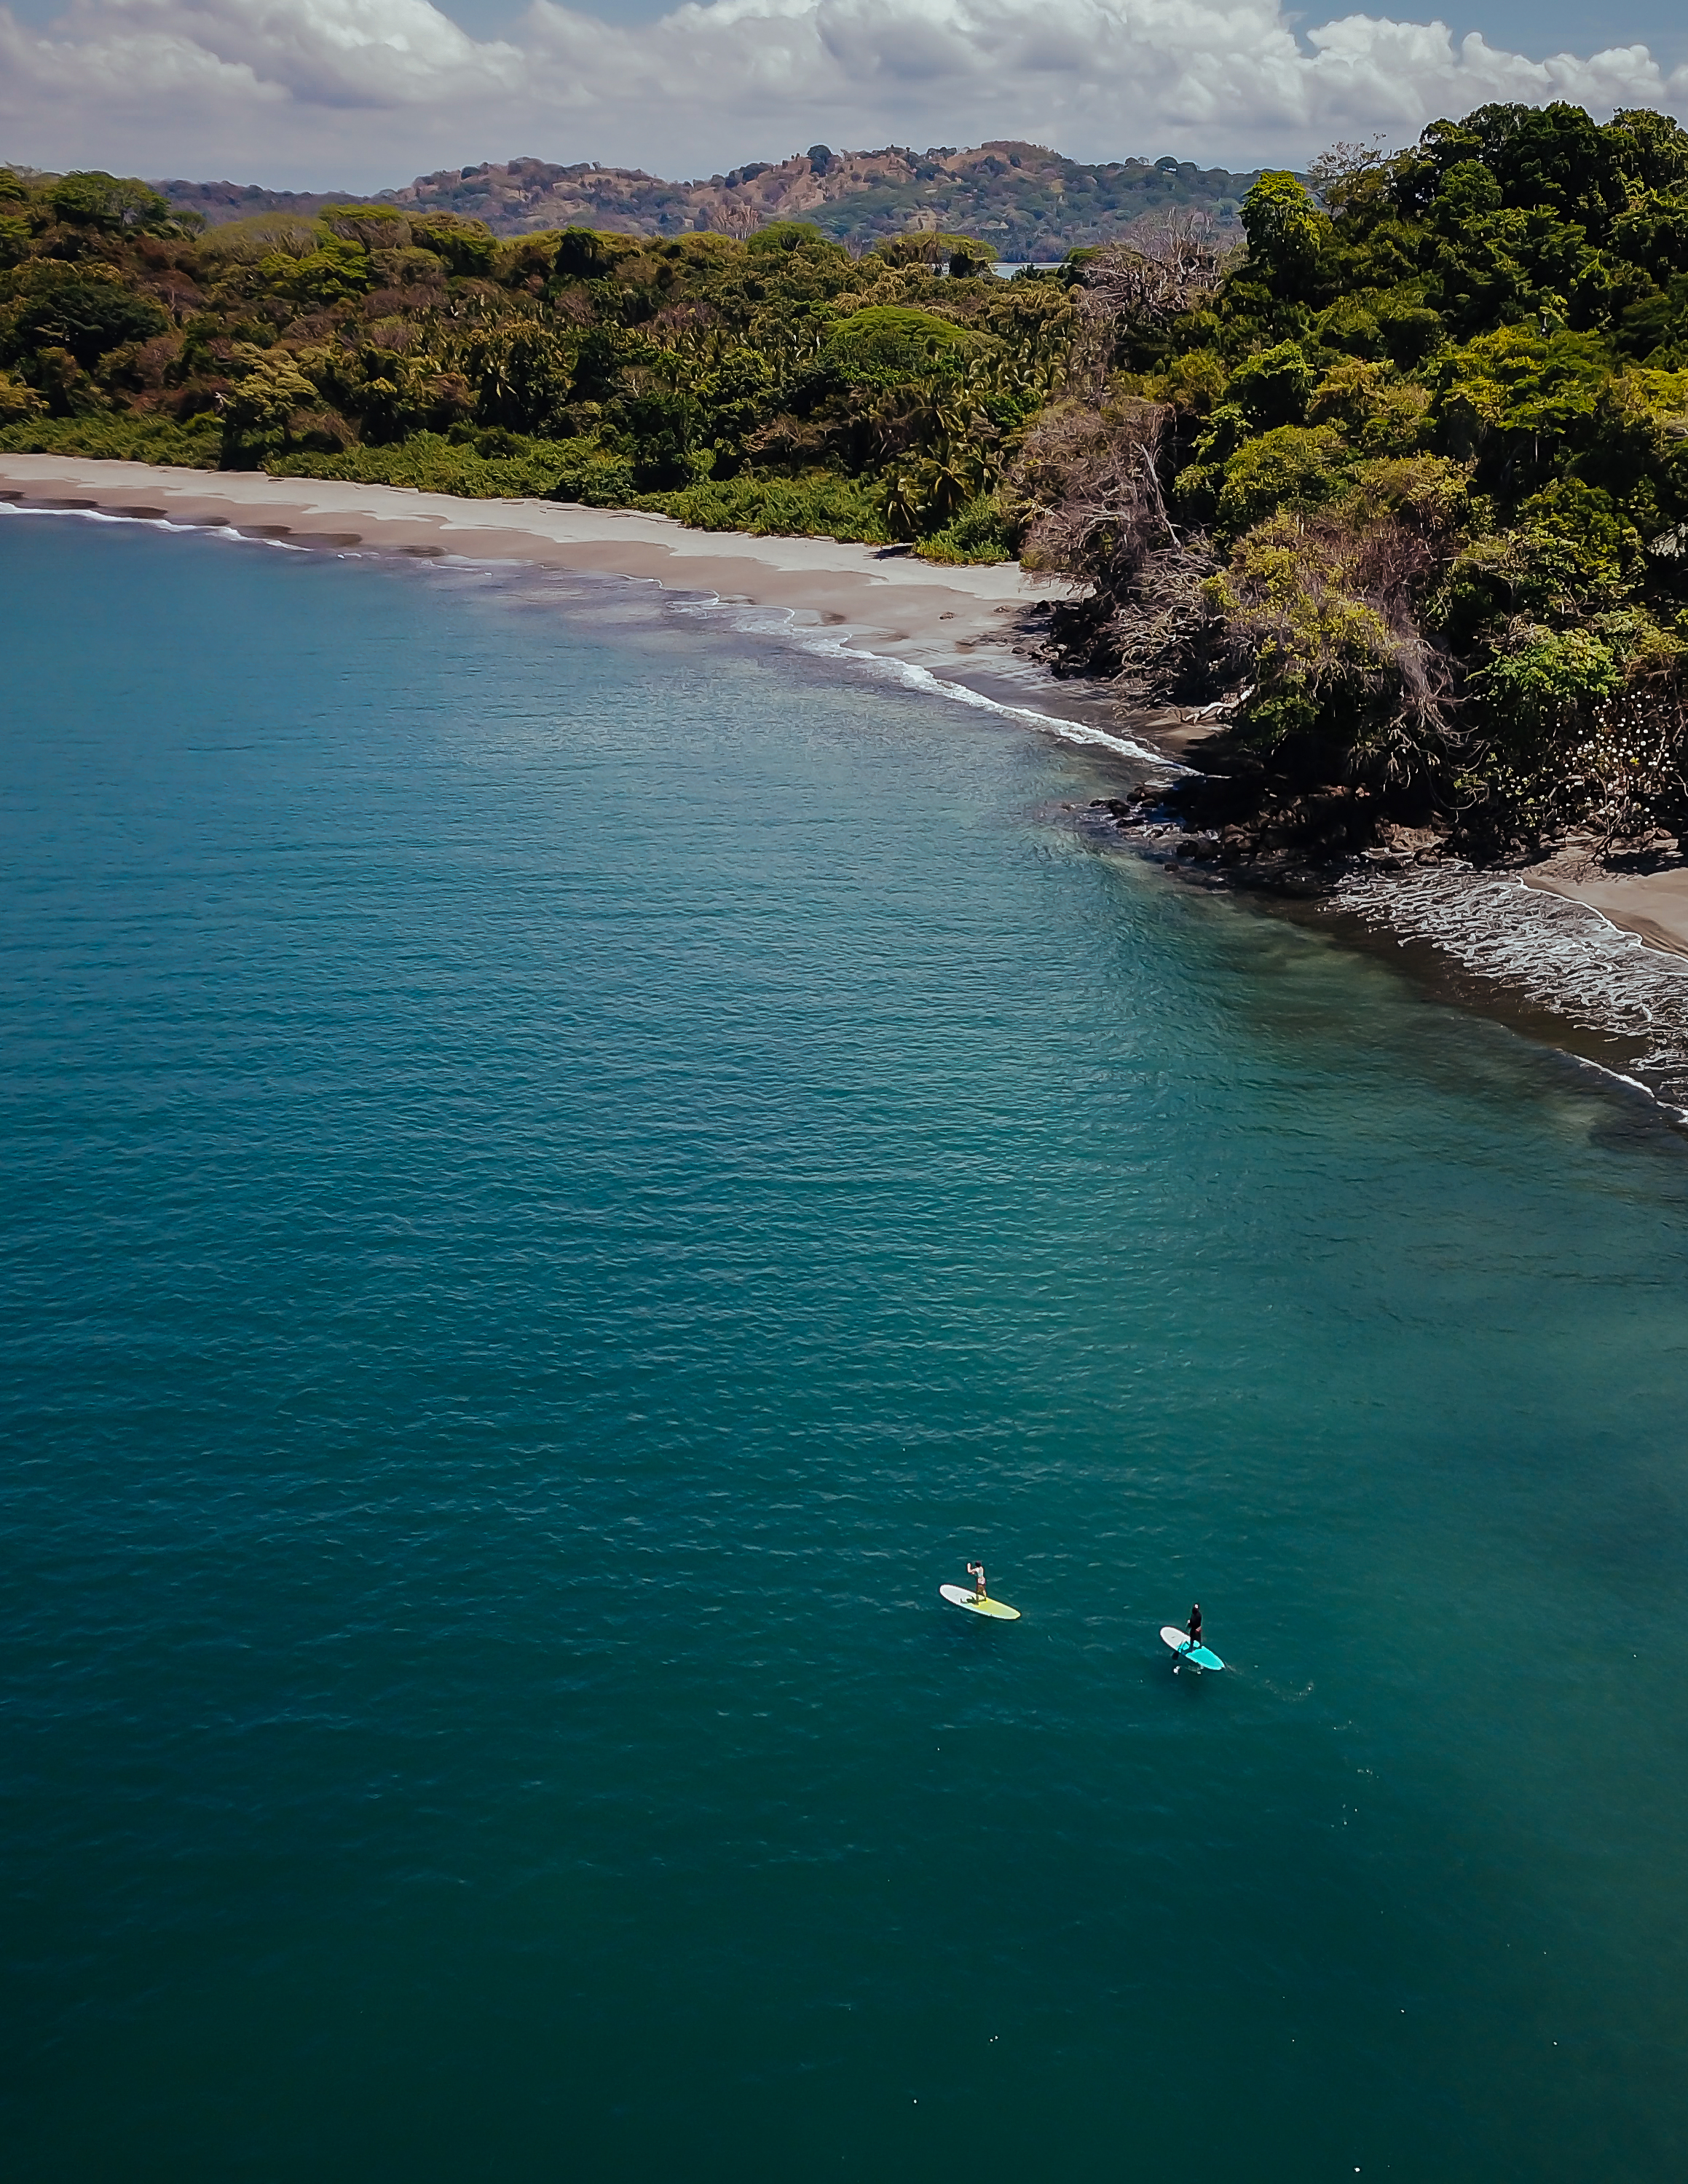 Paddle boarding off the coast of Isla Palenque